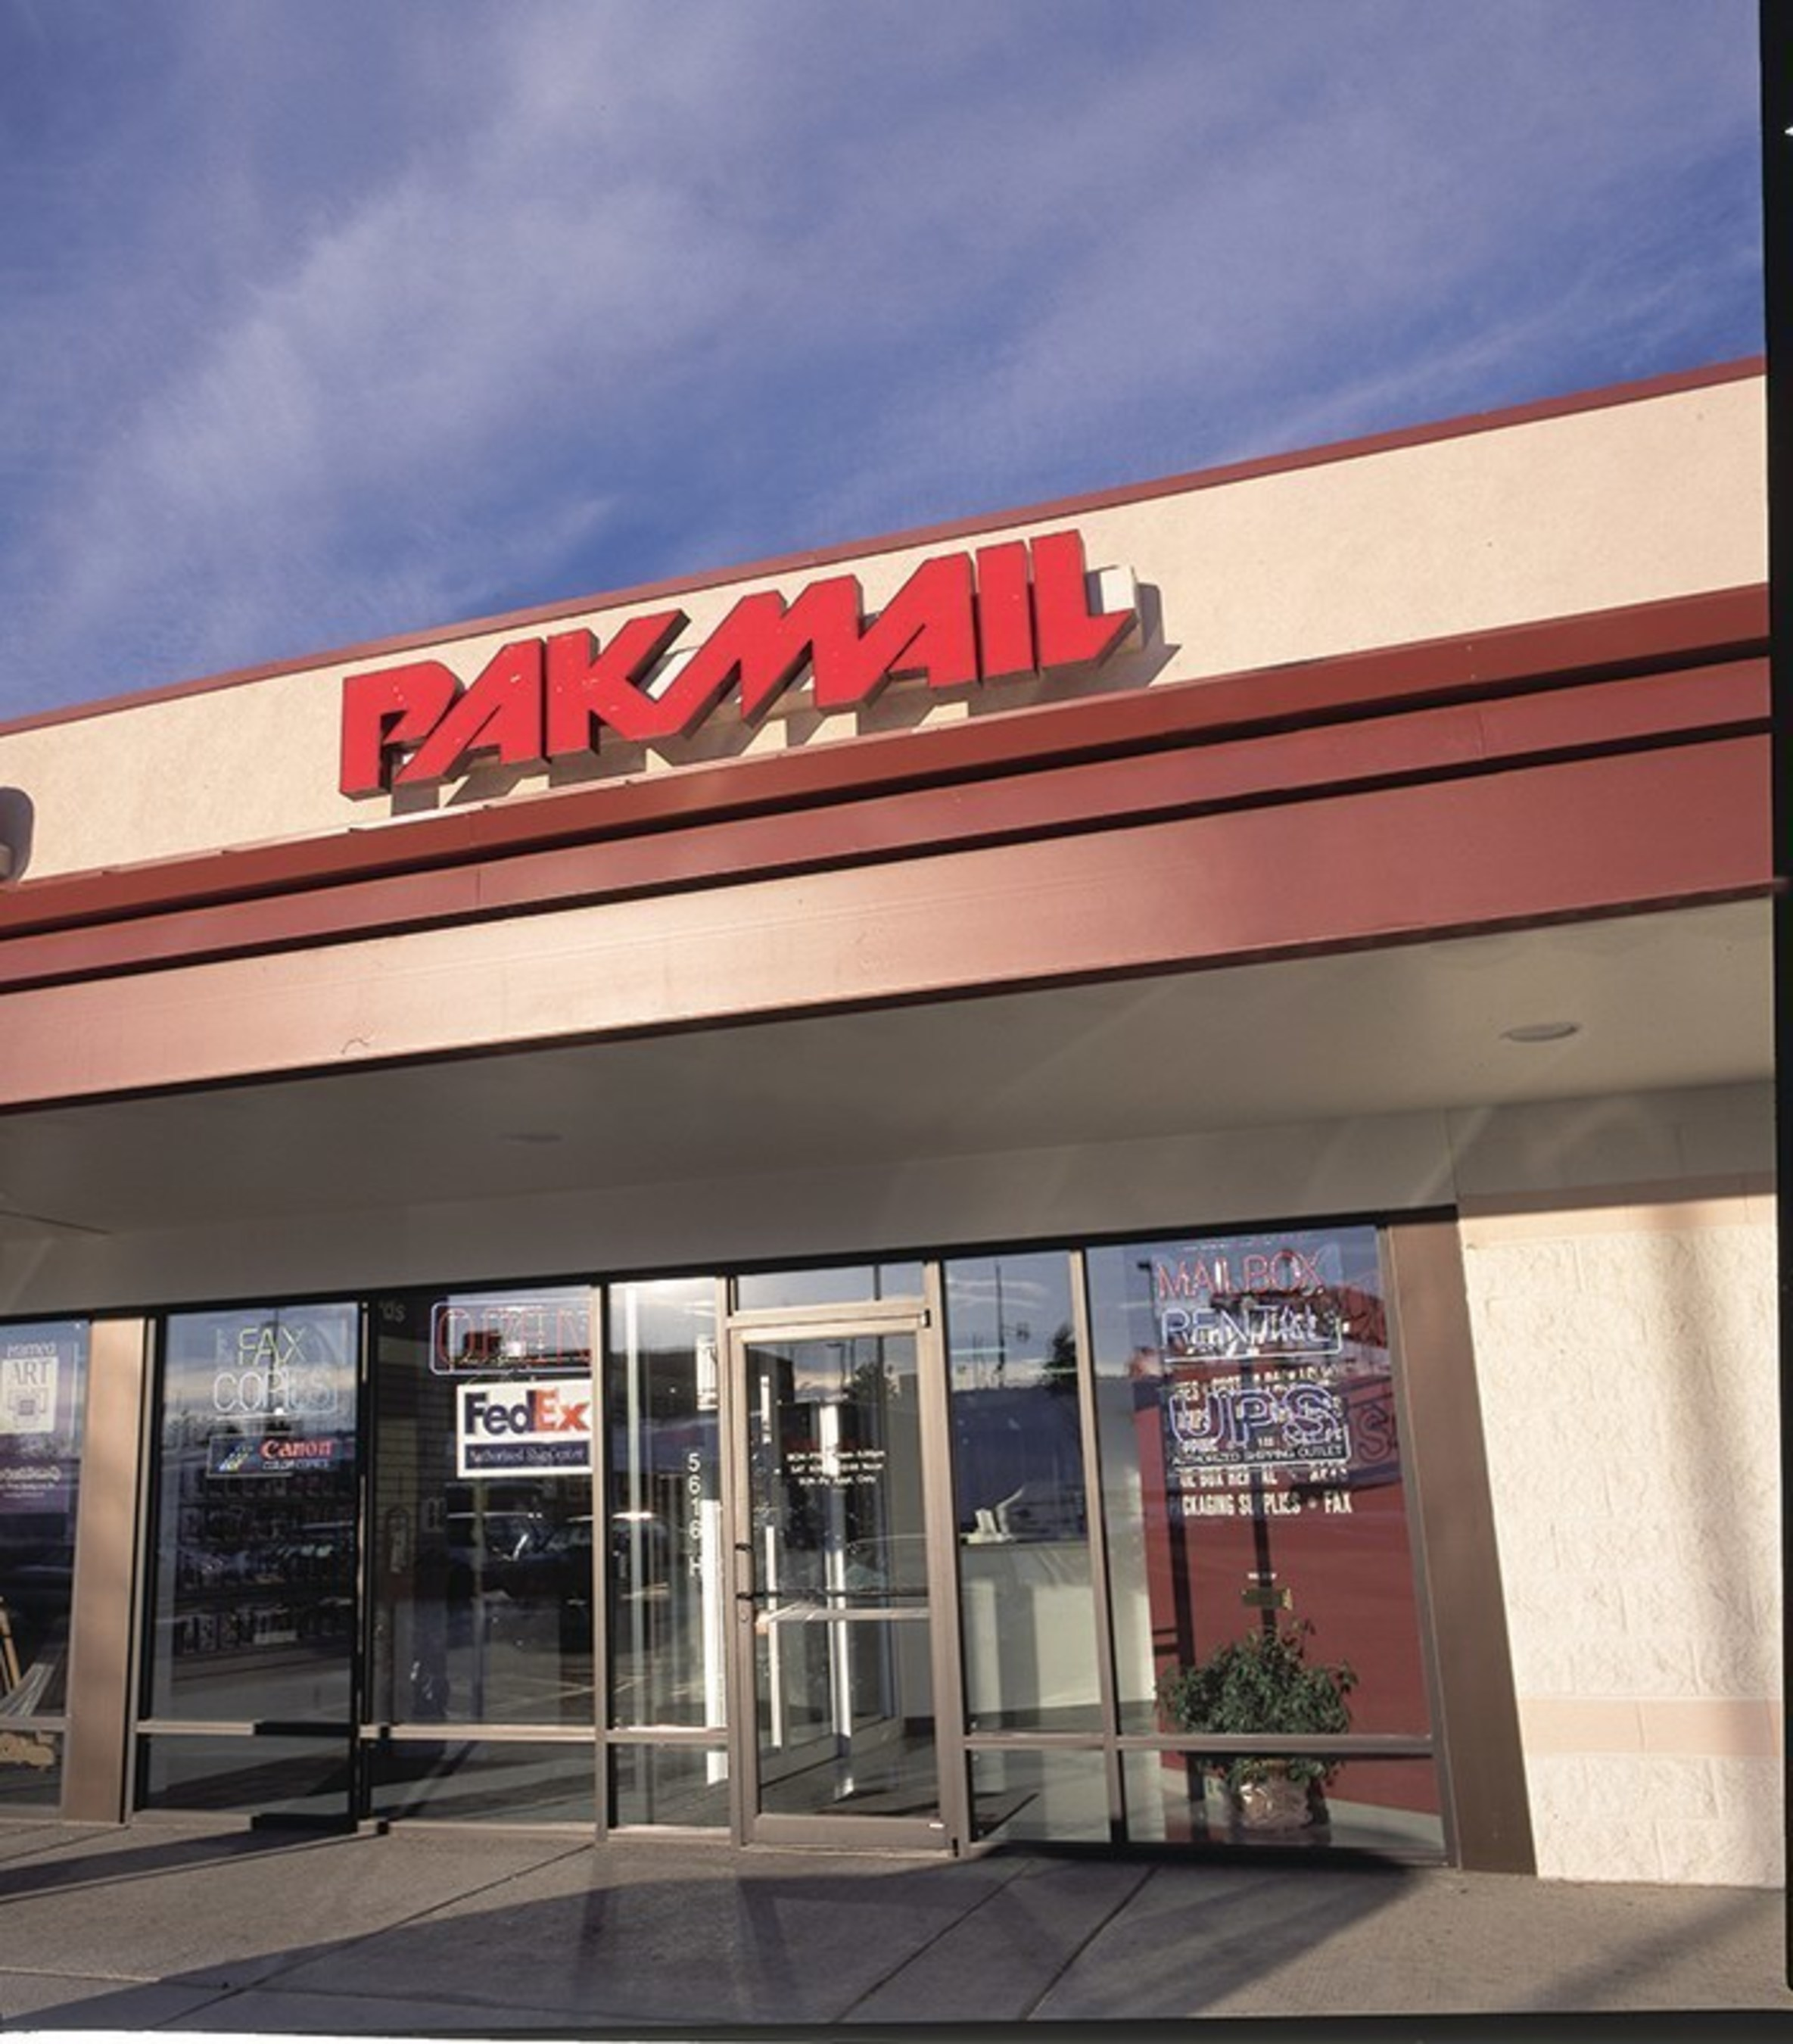 Pak Mail acquired by Annex Brands, Inc.